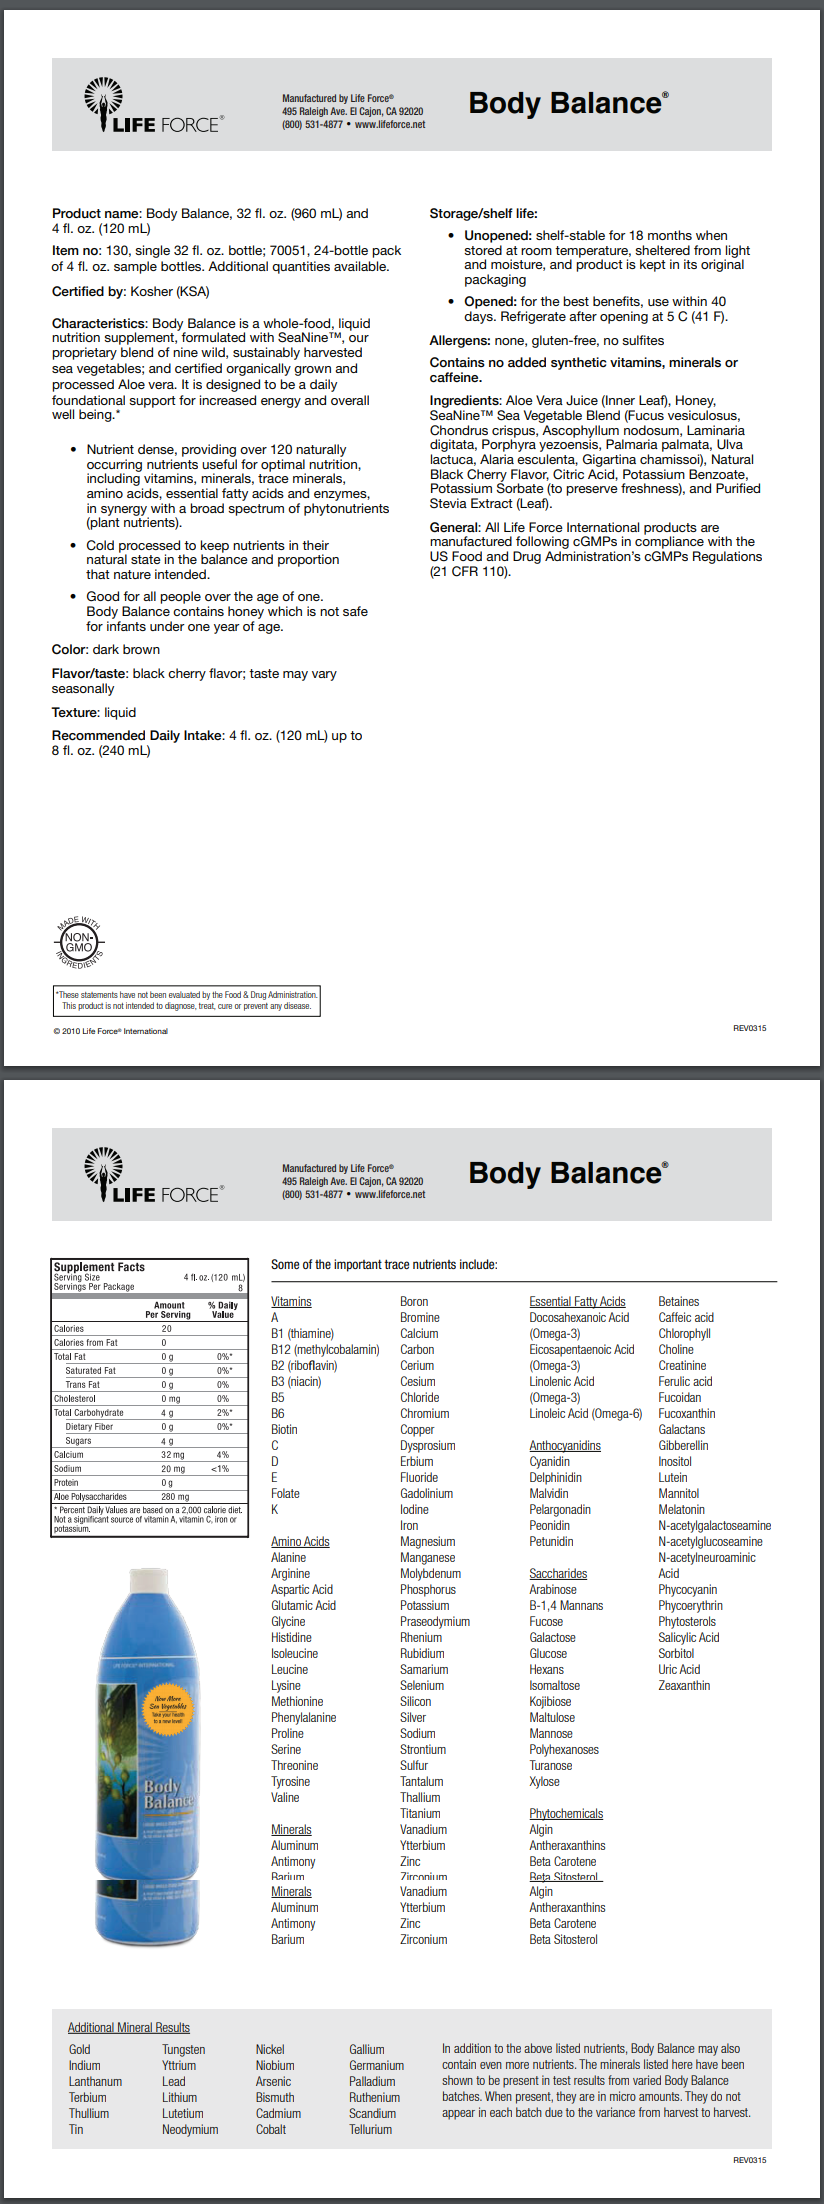 BodyBalance FACT SHEET